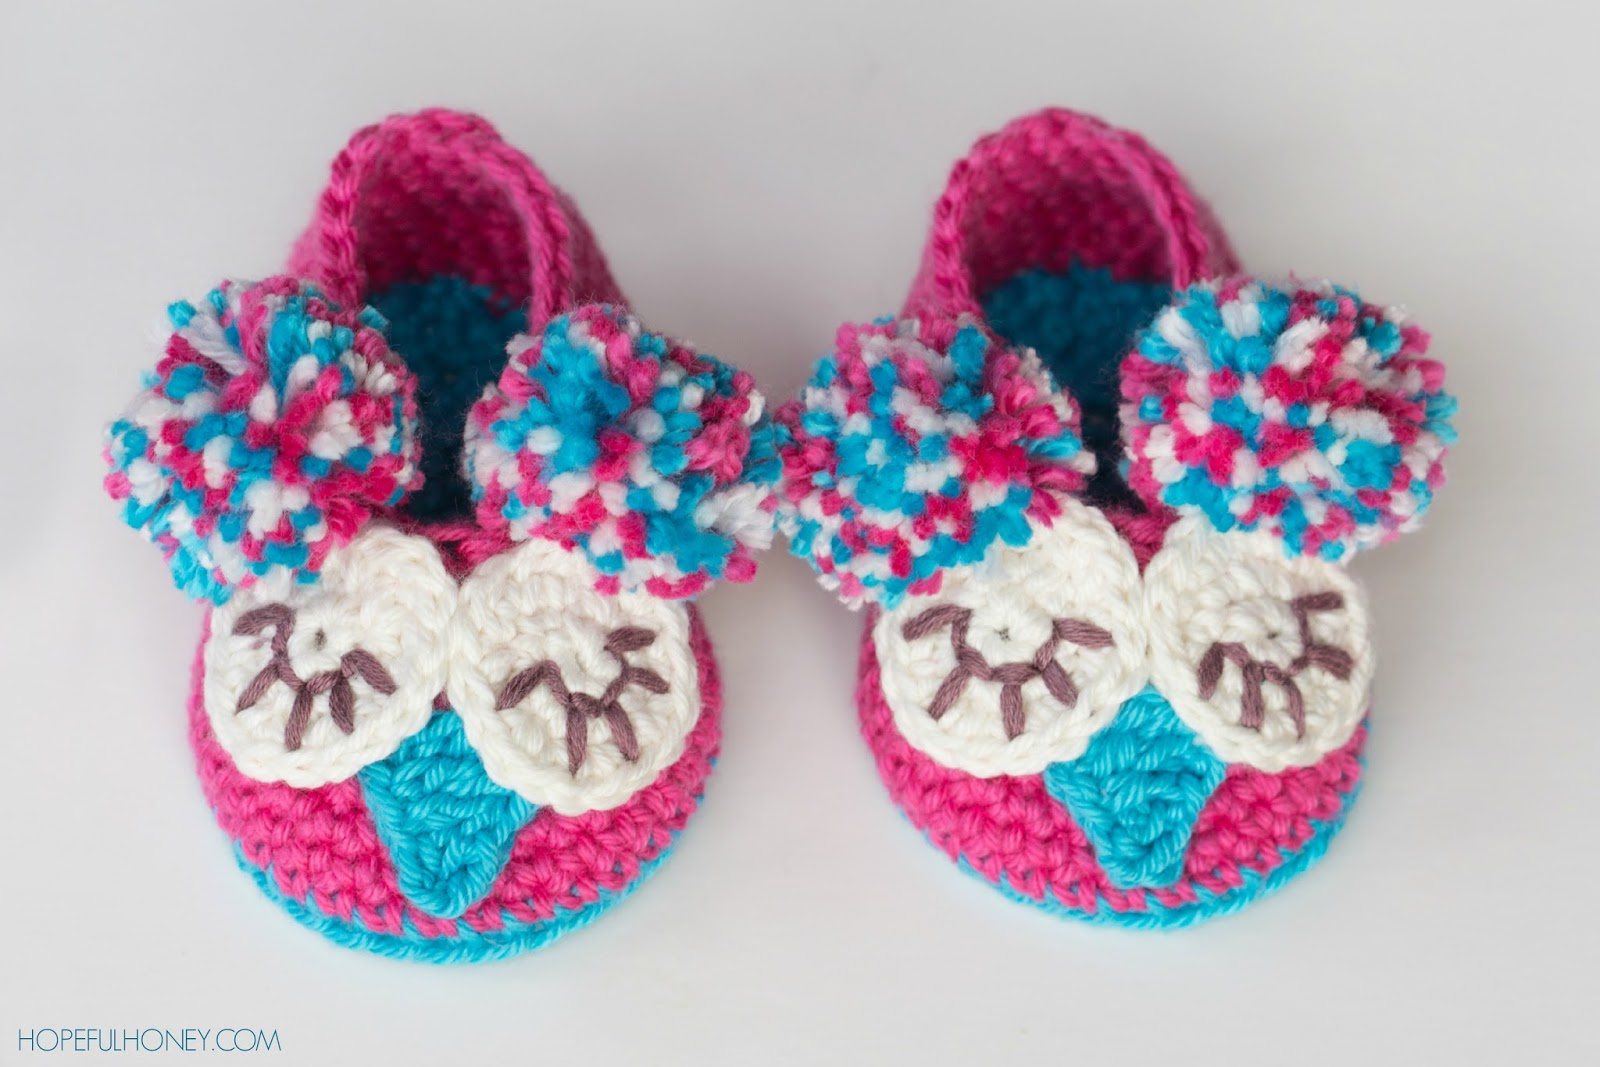 Crochet Pattern Owl Baby : Hopeful Honey Craft, Crochet, Create: Owl Baby Booties ...